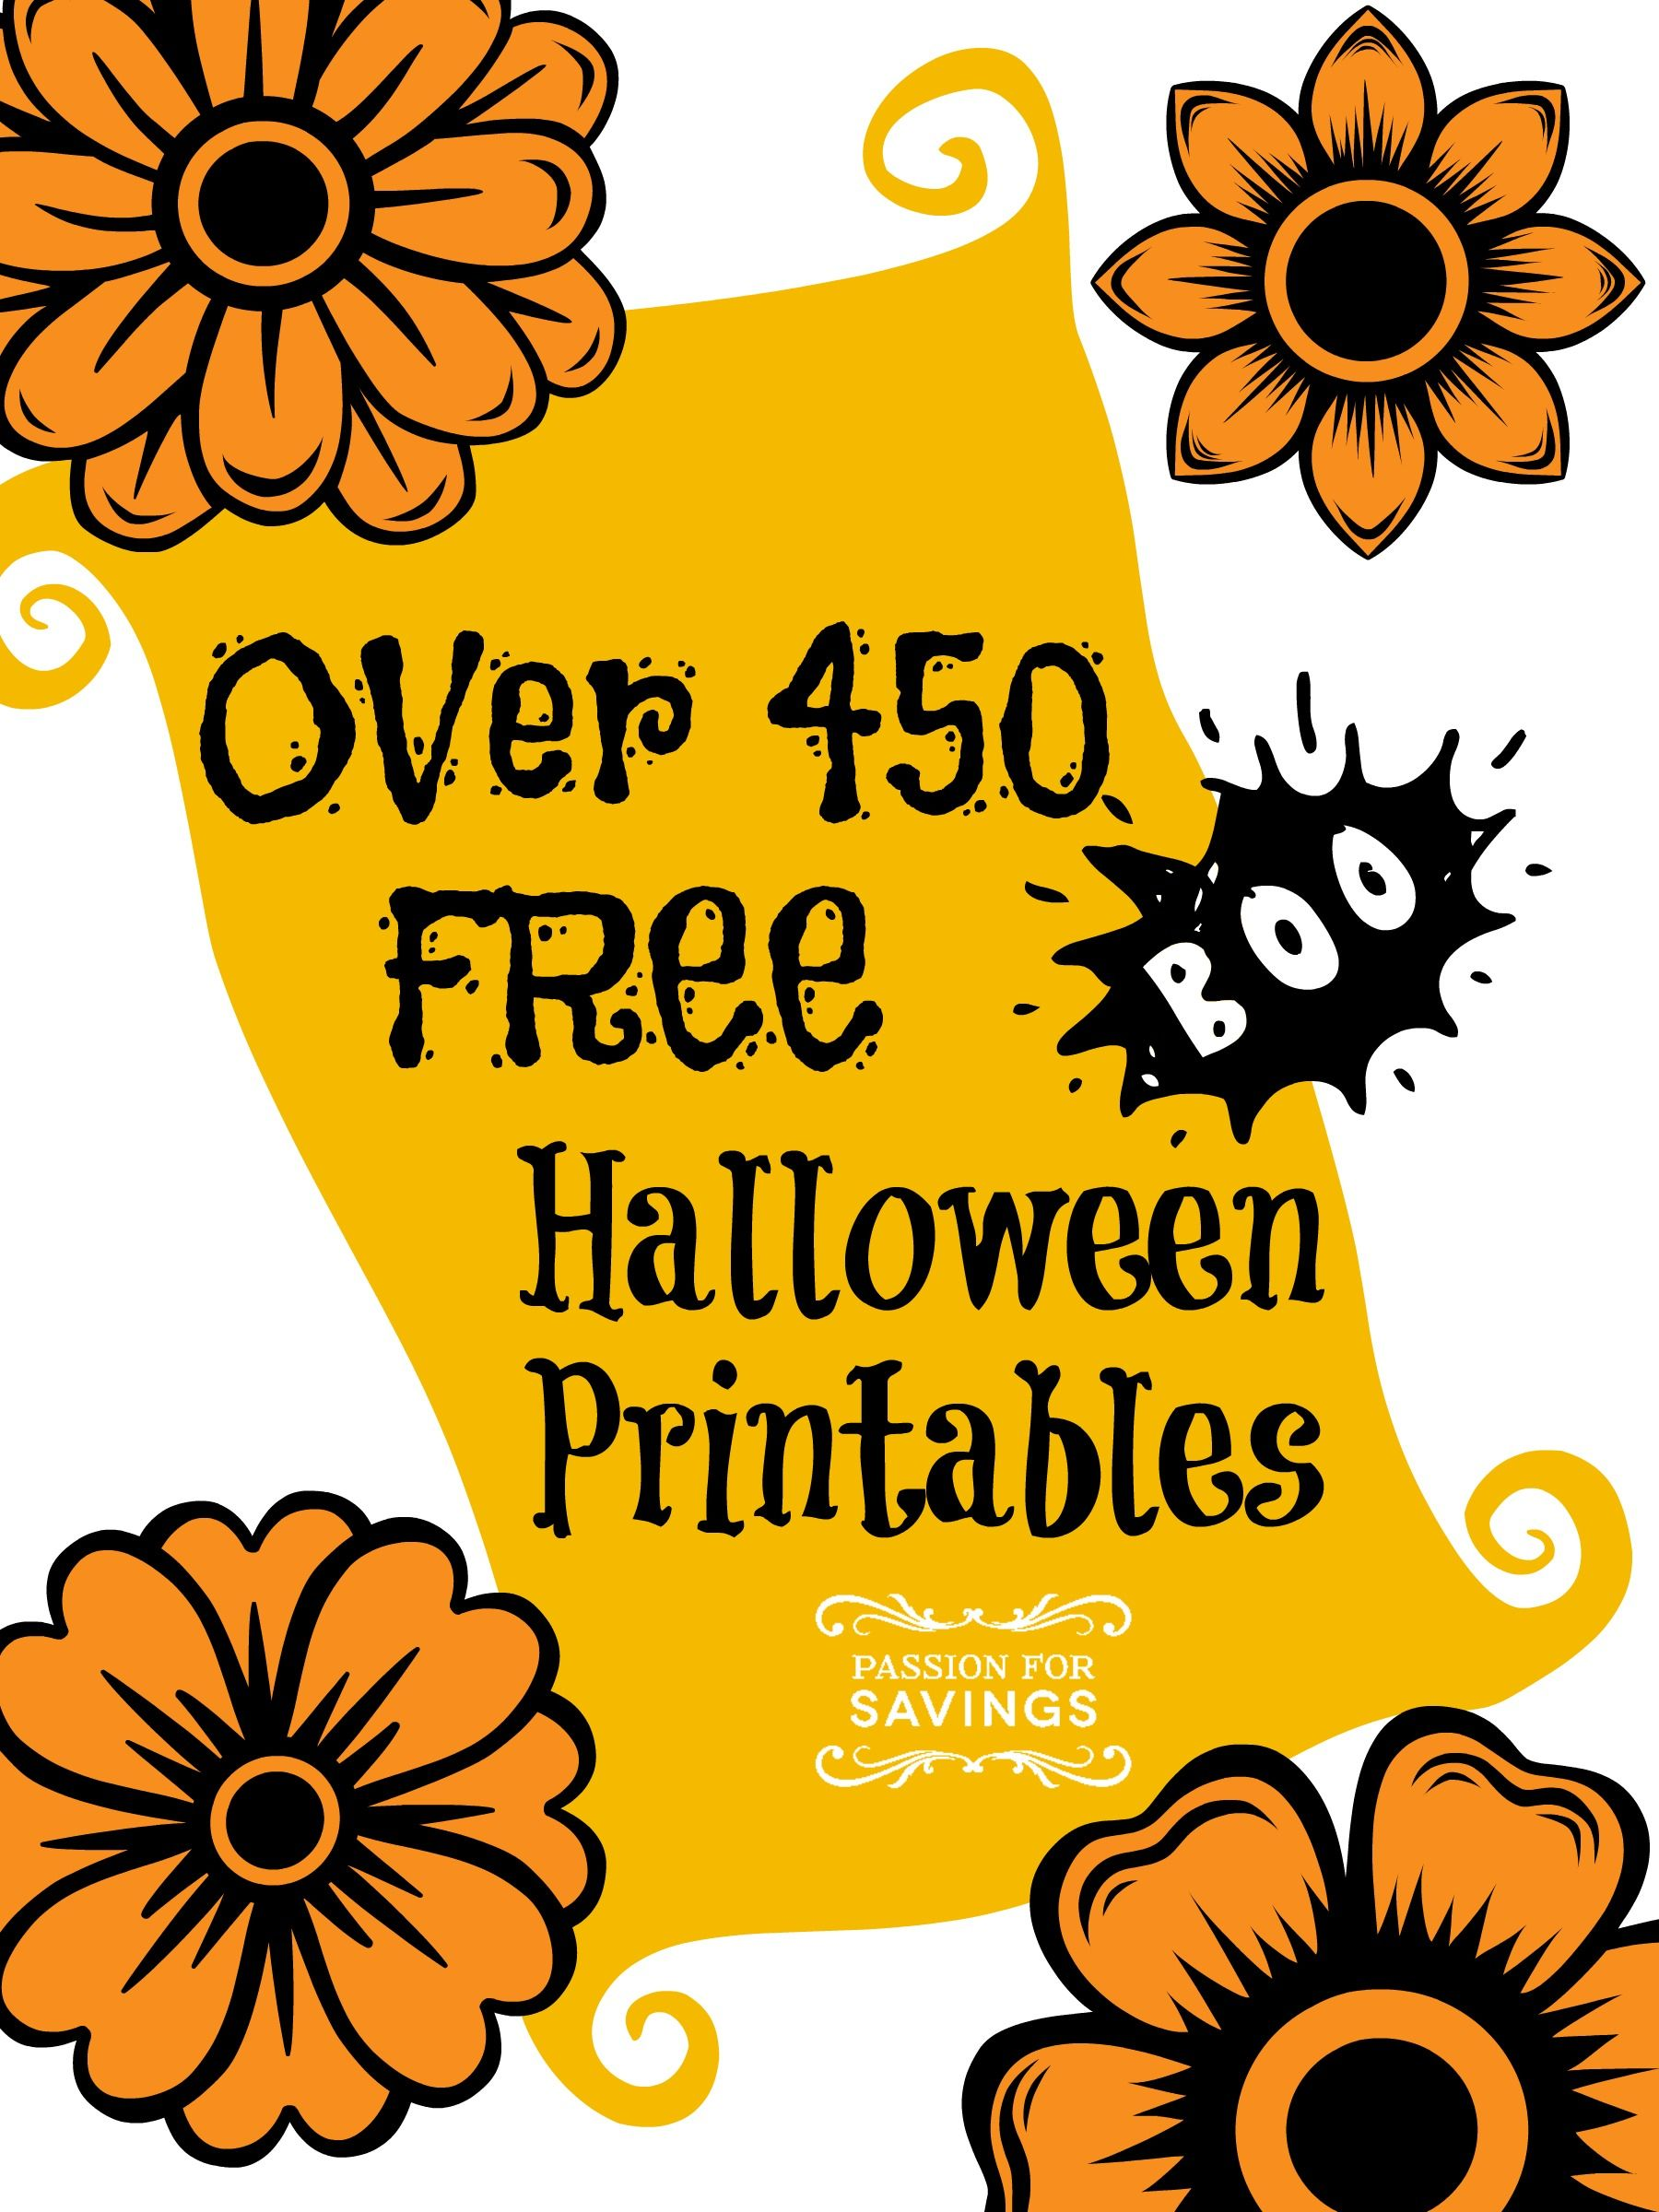 Check Out This List Of Over 450 Free Halloween Printables